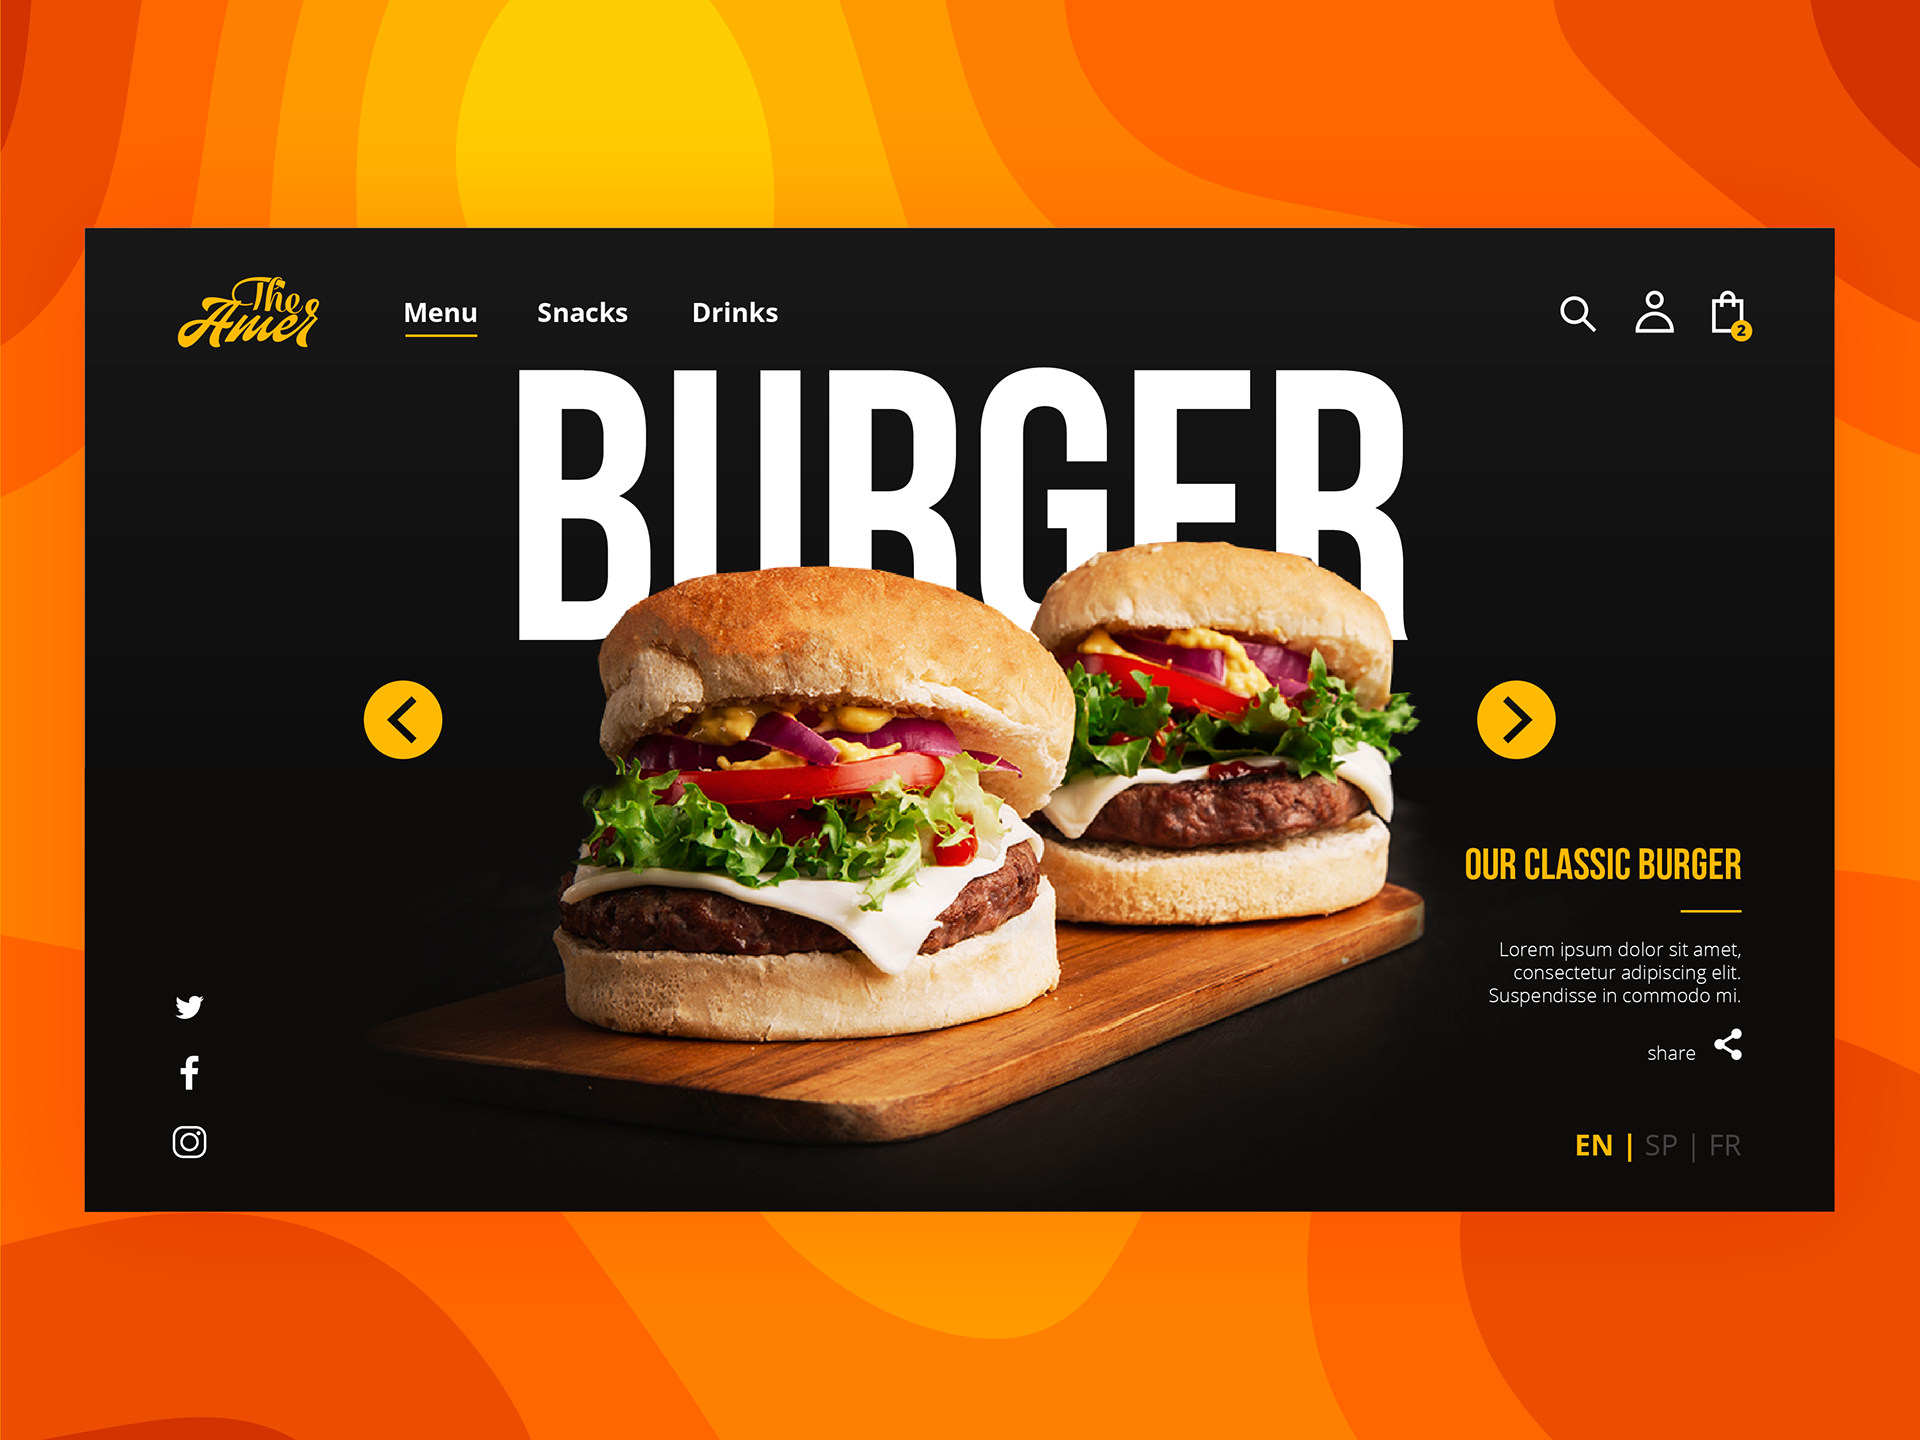 Burger Food Delivery Landing Page Designs On Behance Ideias De Marketing Embalagens